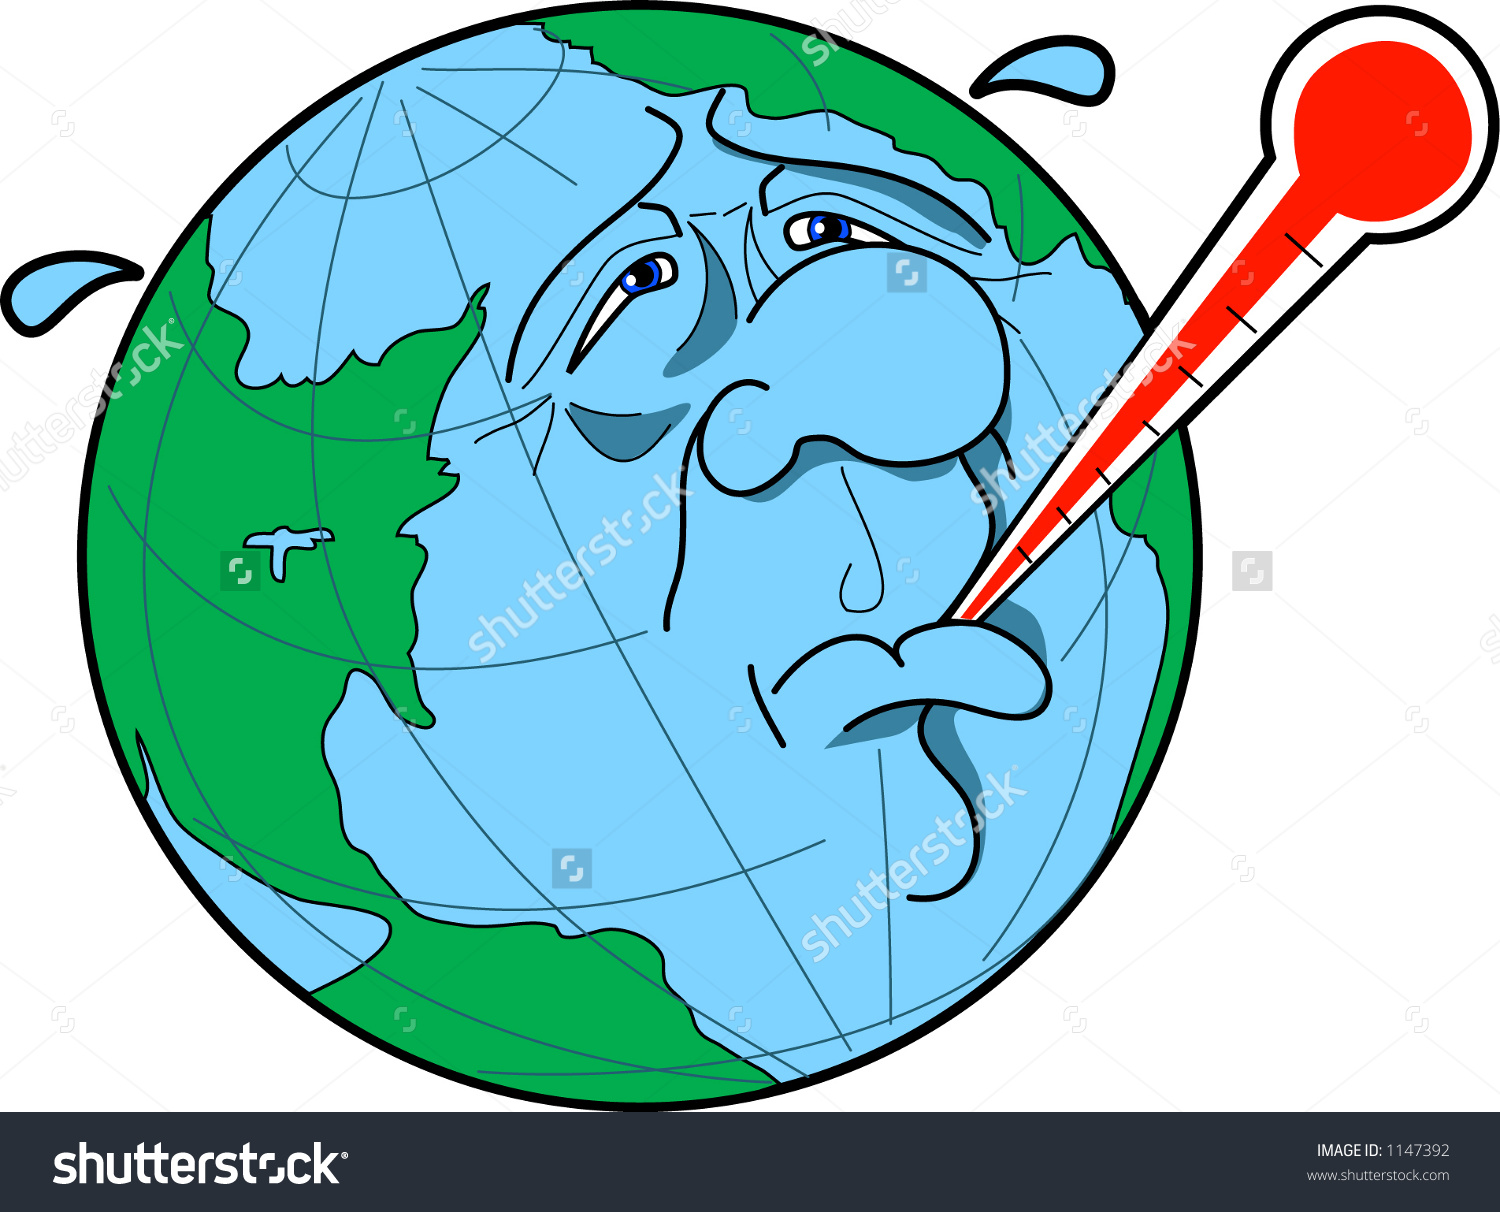 1500x1212 Global Warming Earth Clipart, Explore Pictures